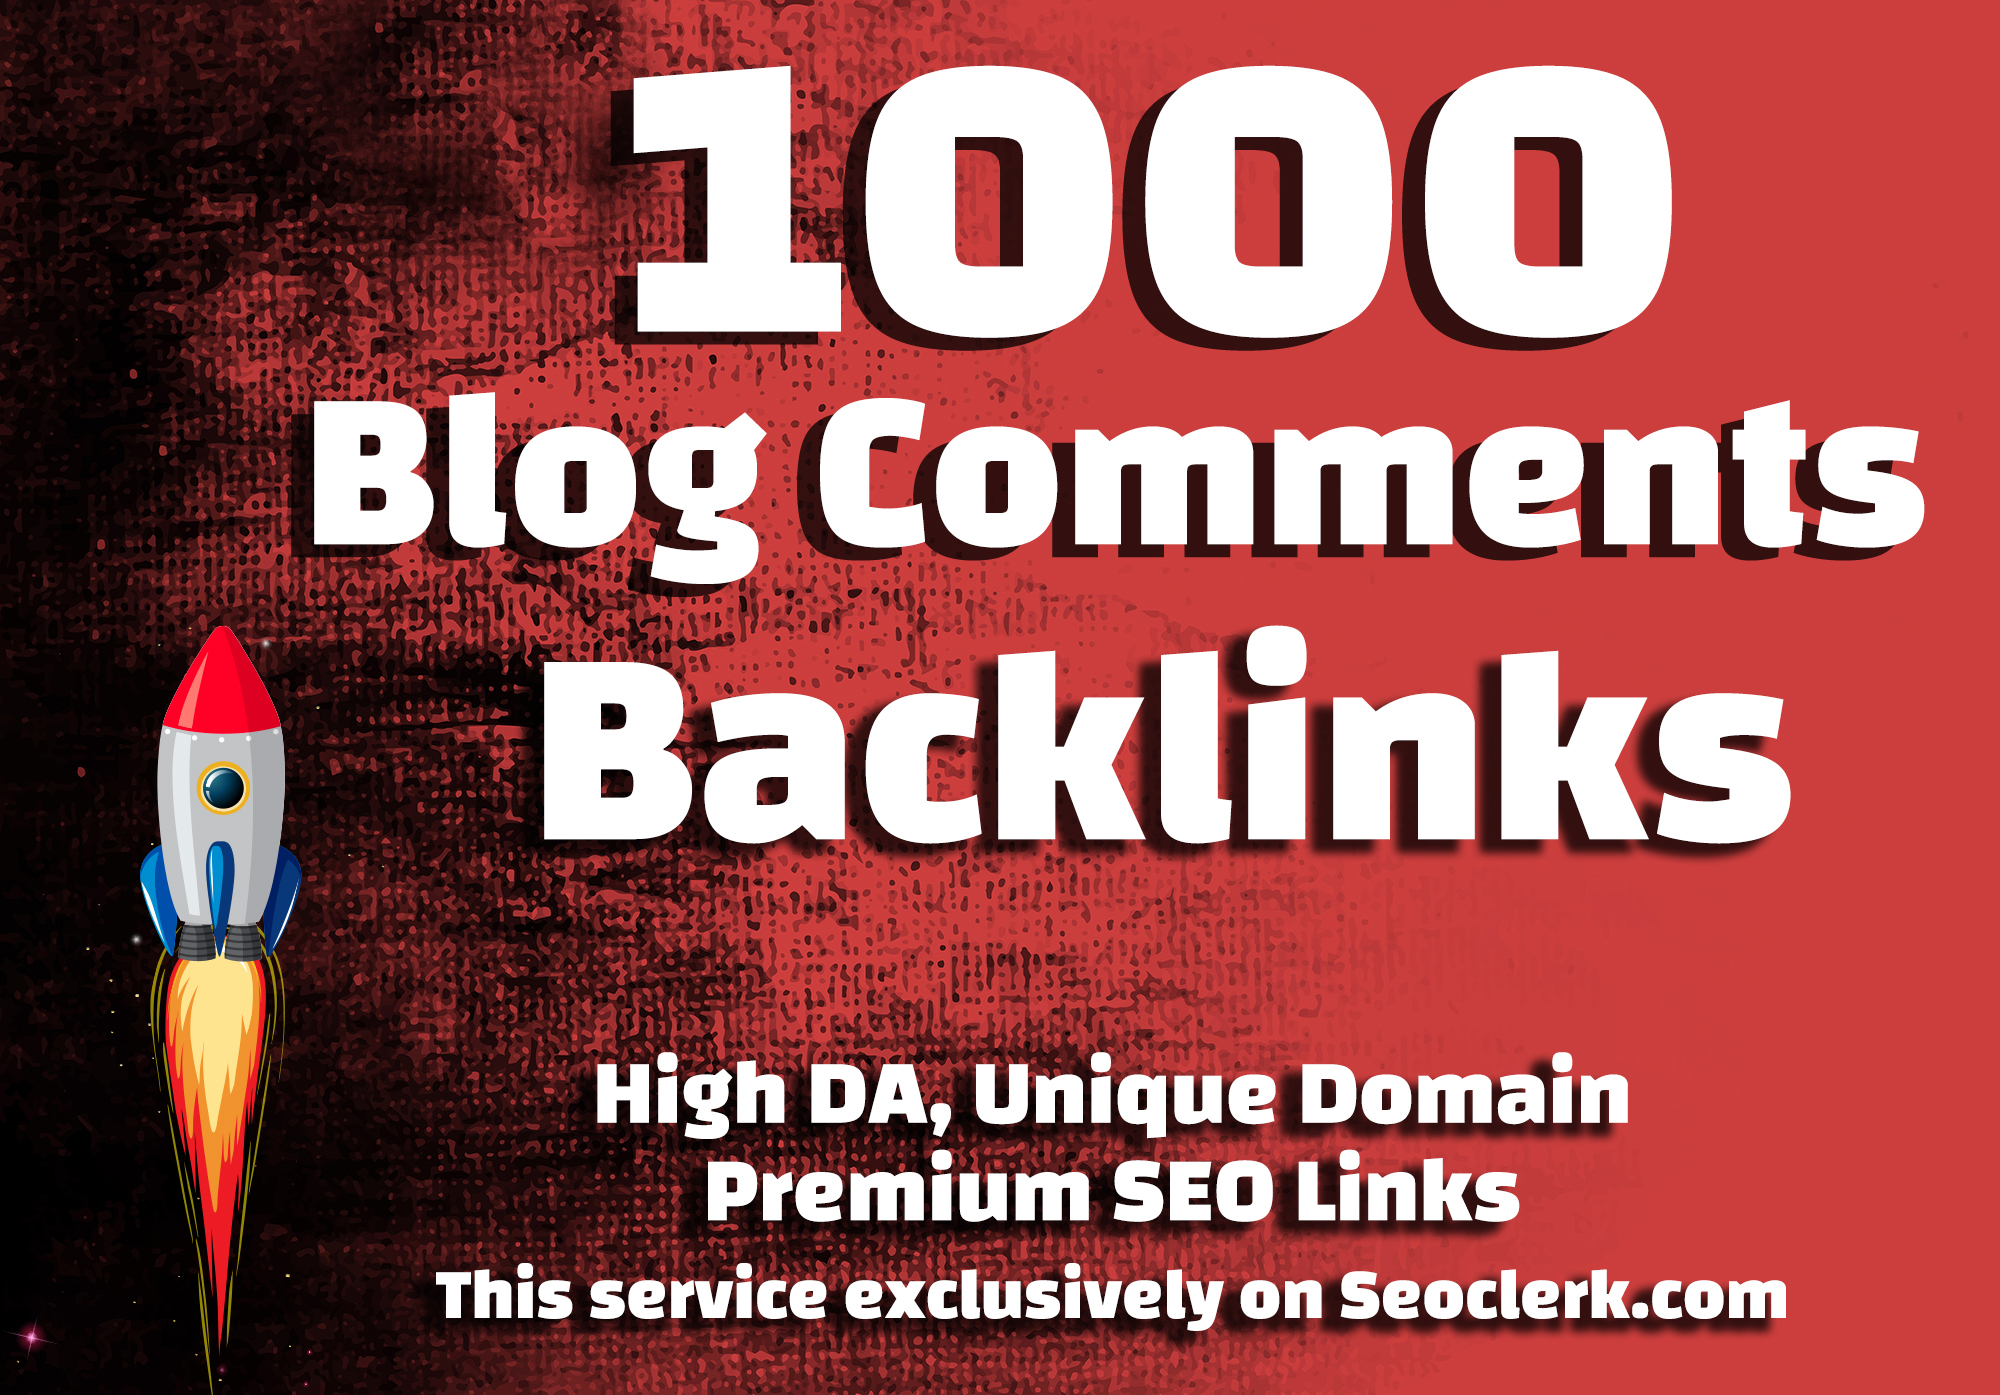 Make 1000 Blog Comments Backlinks High DA PA Dofollow Unique SEO Backlinks